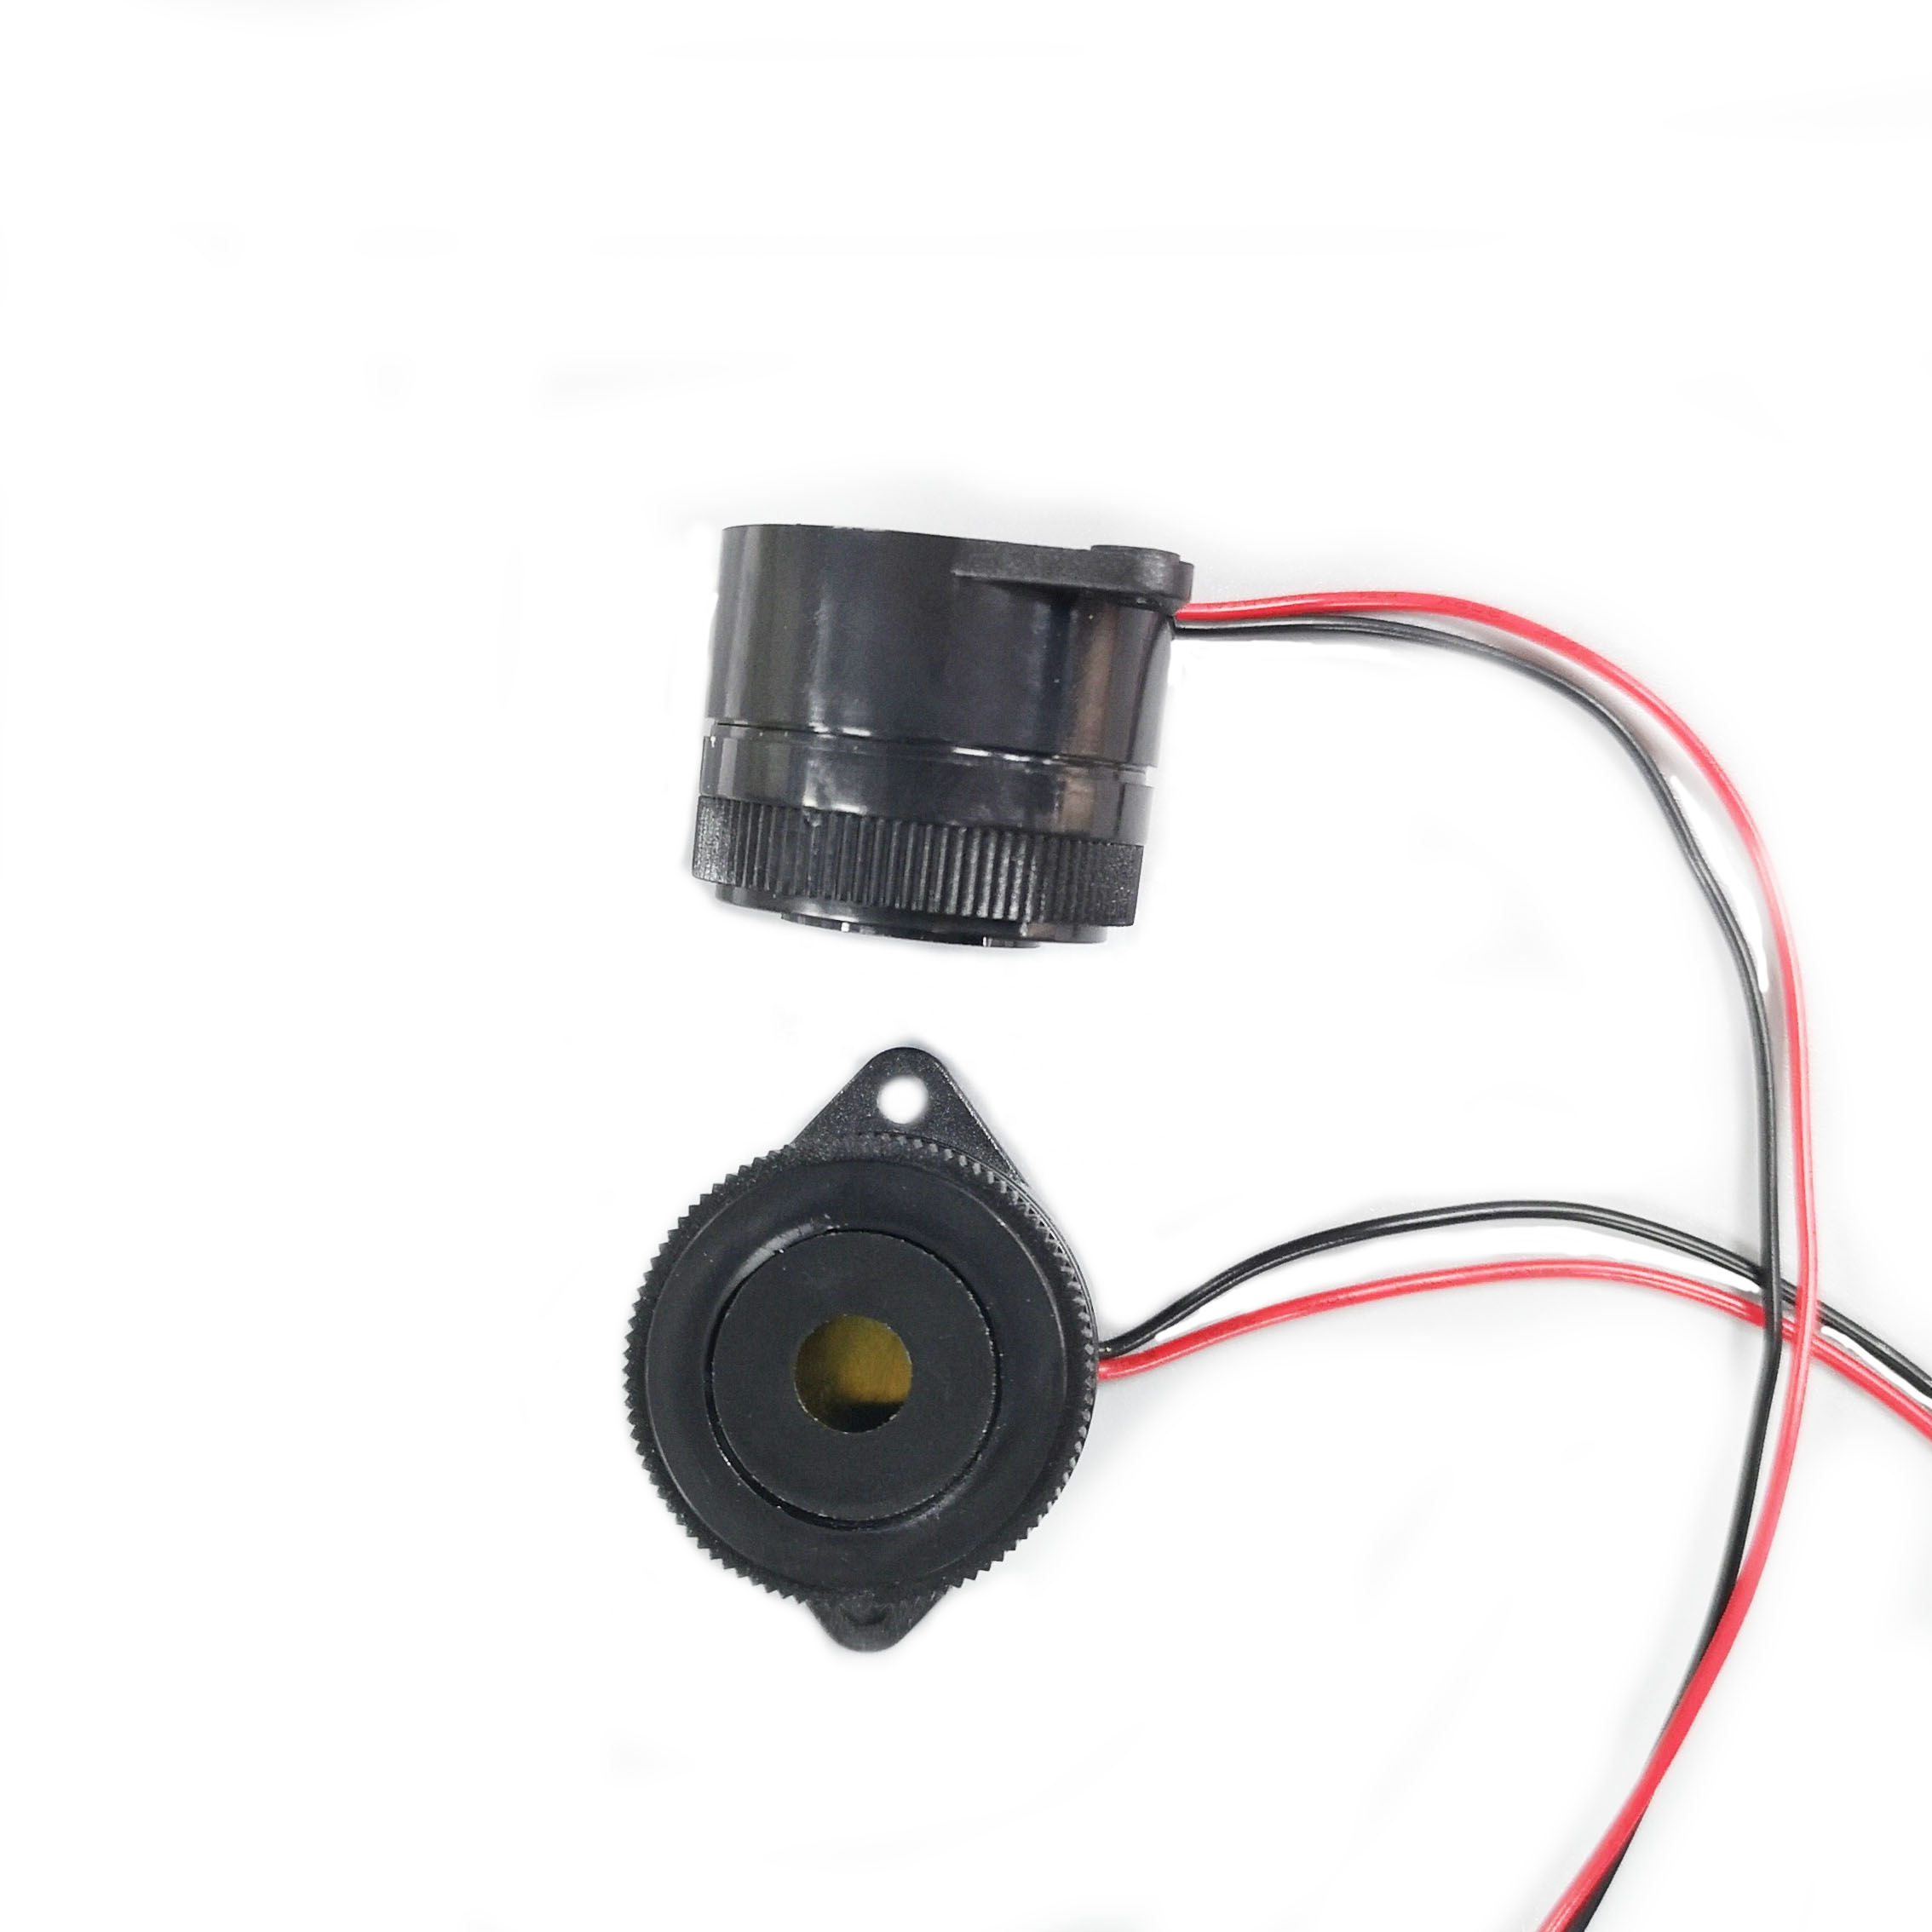 29.5*24.5mm 12V long sound intermittent active piezo lead buzzer Continuous tone 3.7KHz buzzer